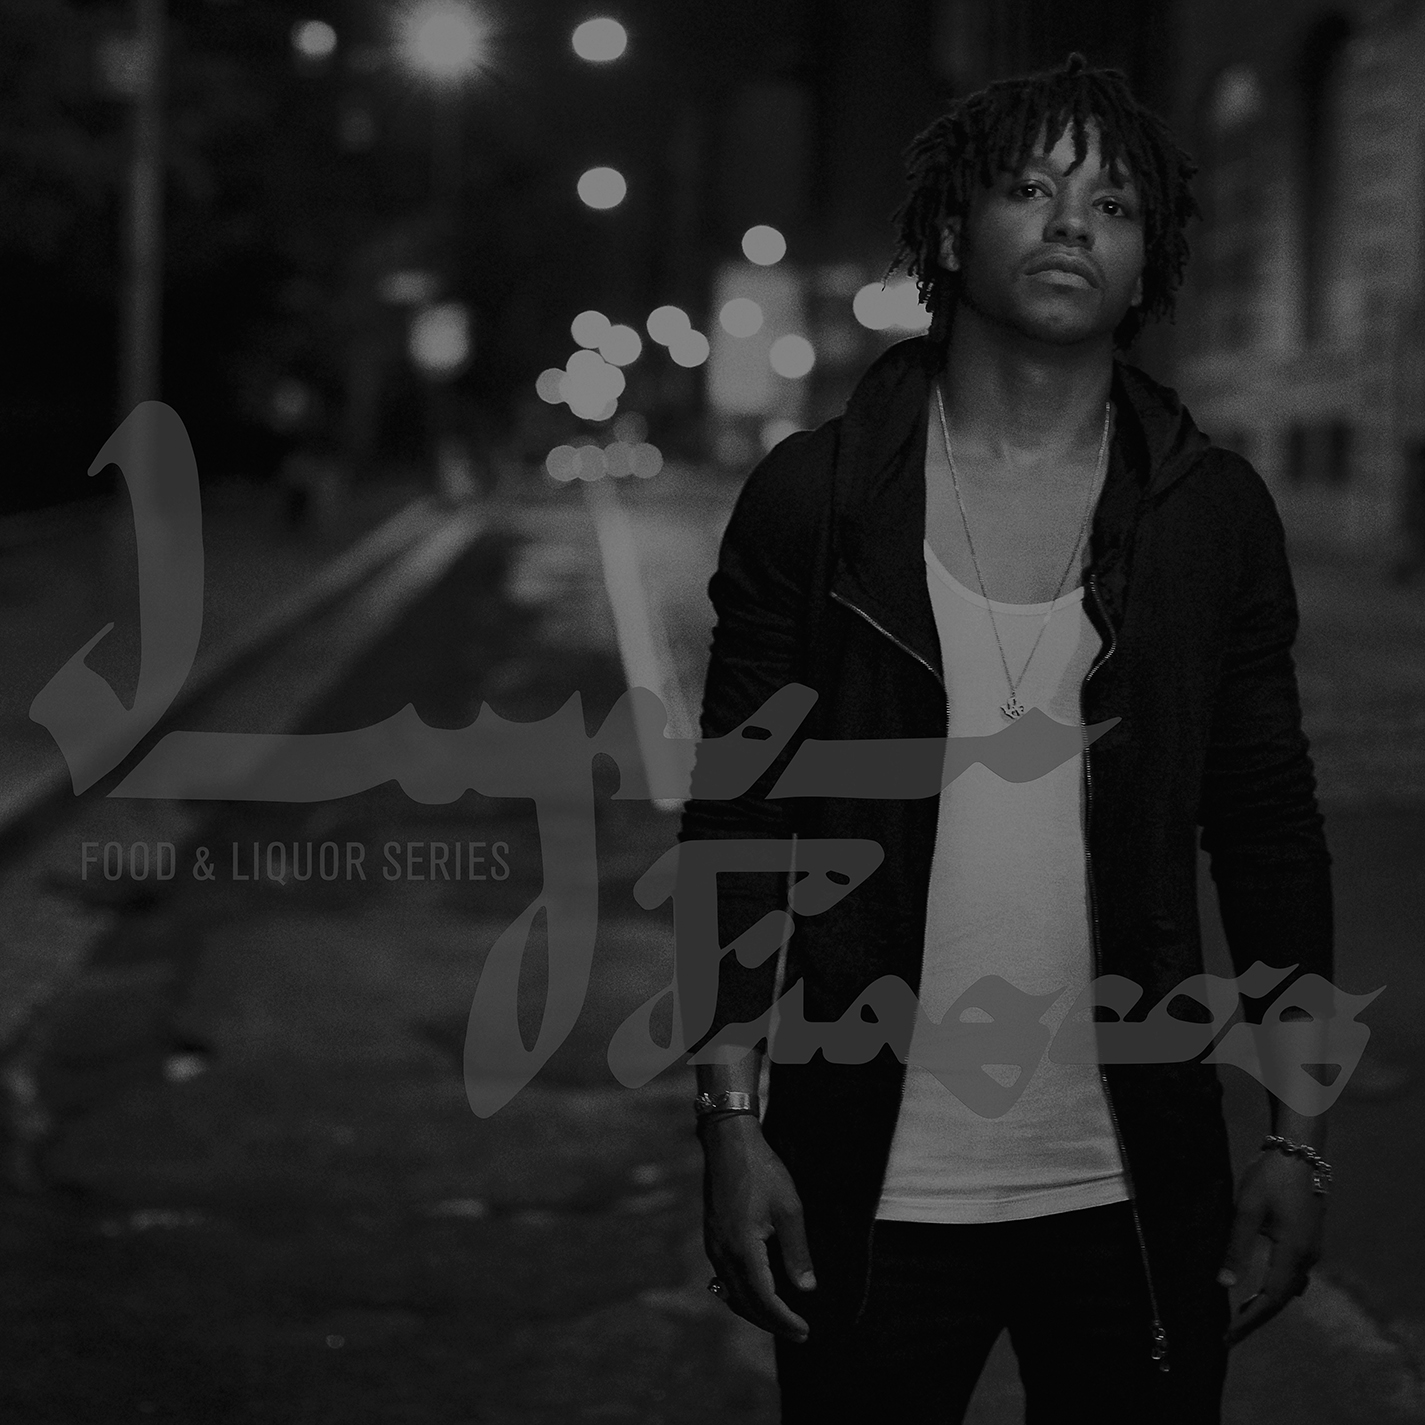 Lupe Fiasco - Lupe Fiasco's Food & Liquor Series [RSD Drops 2021]